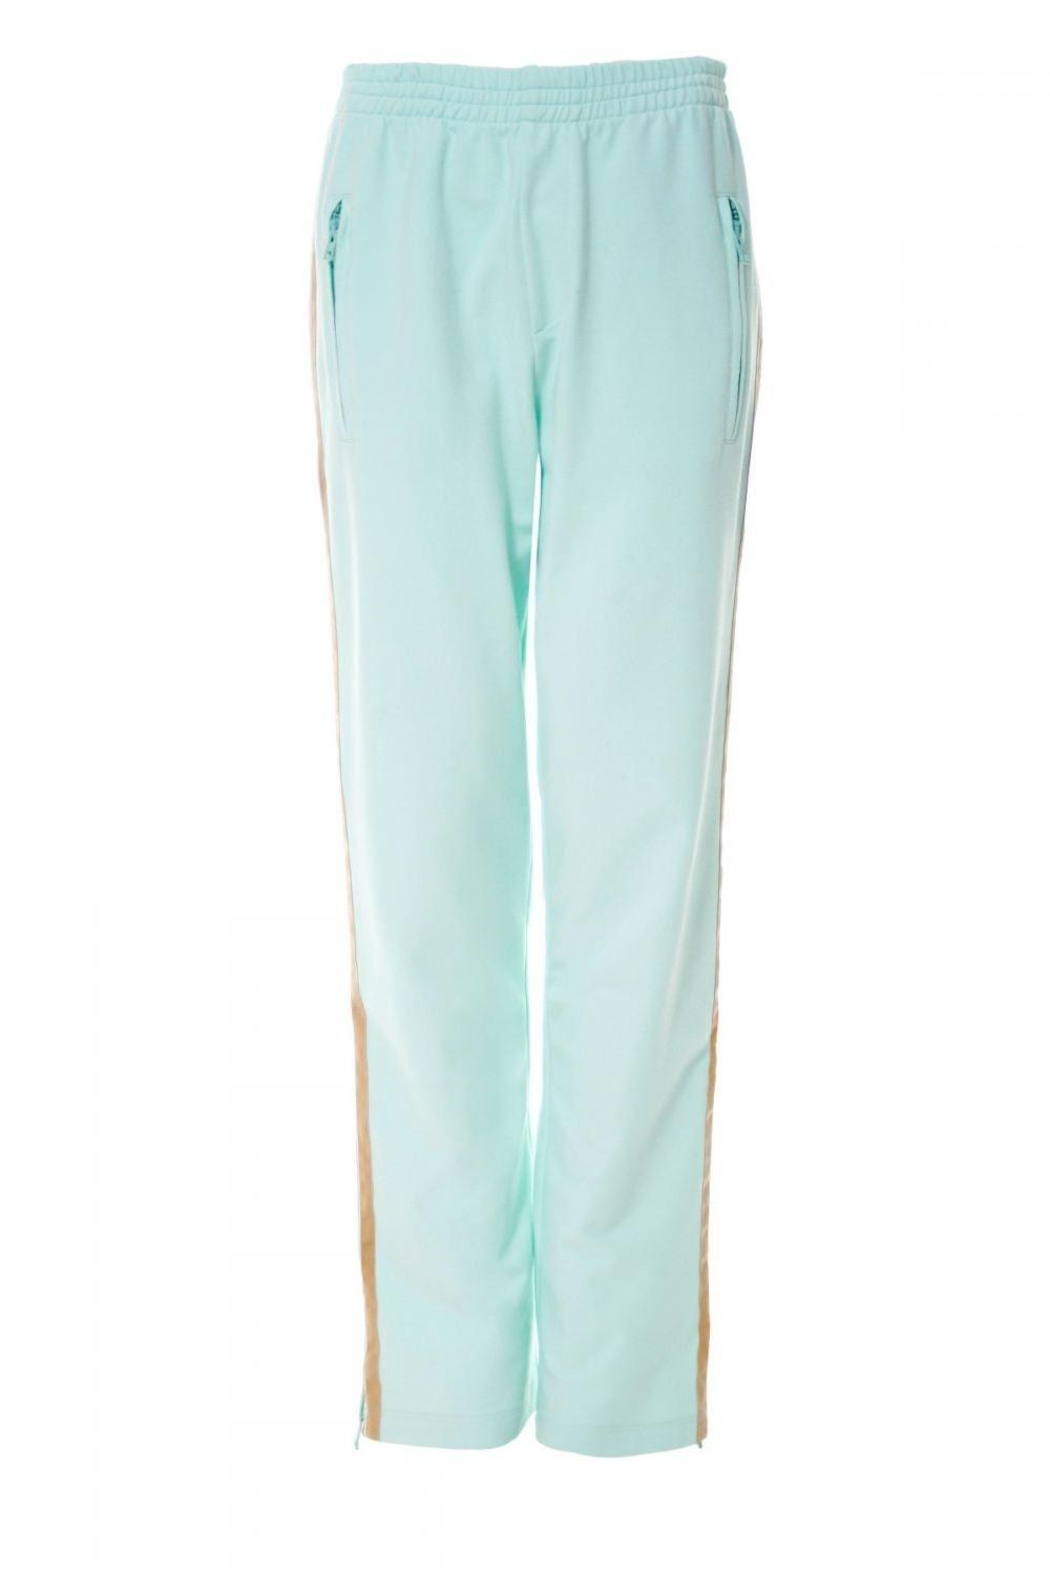 AGGI Pants Edie Frosty Mint - Front Full Image